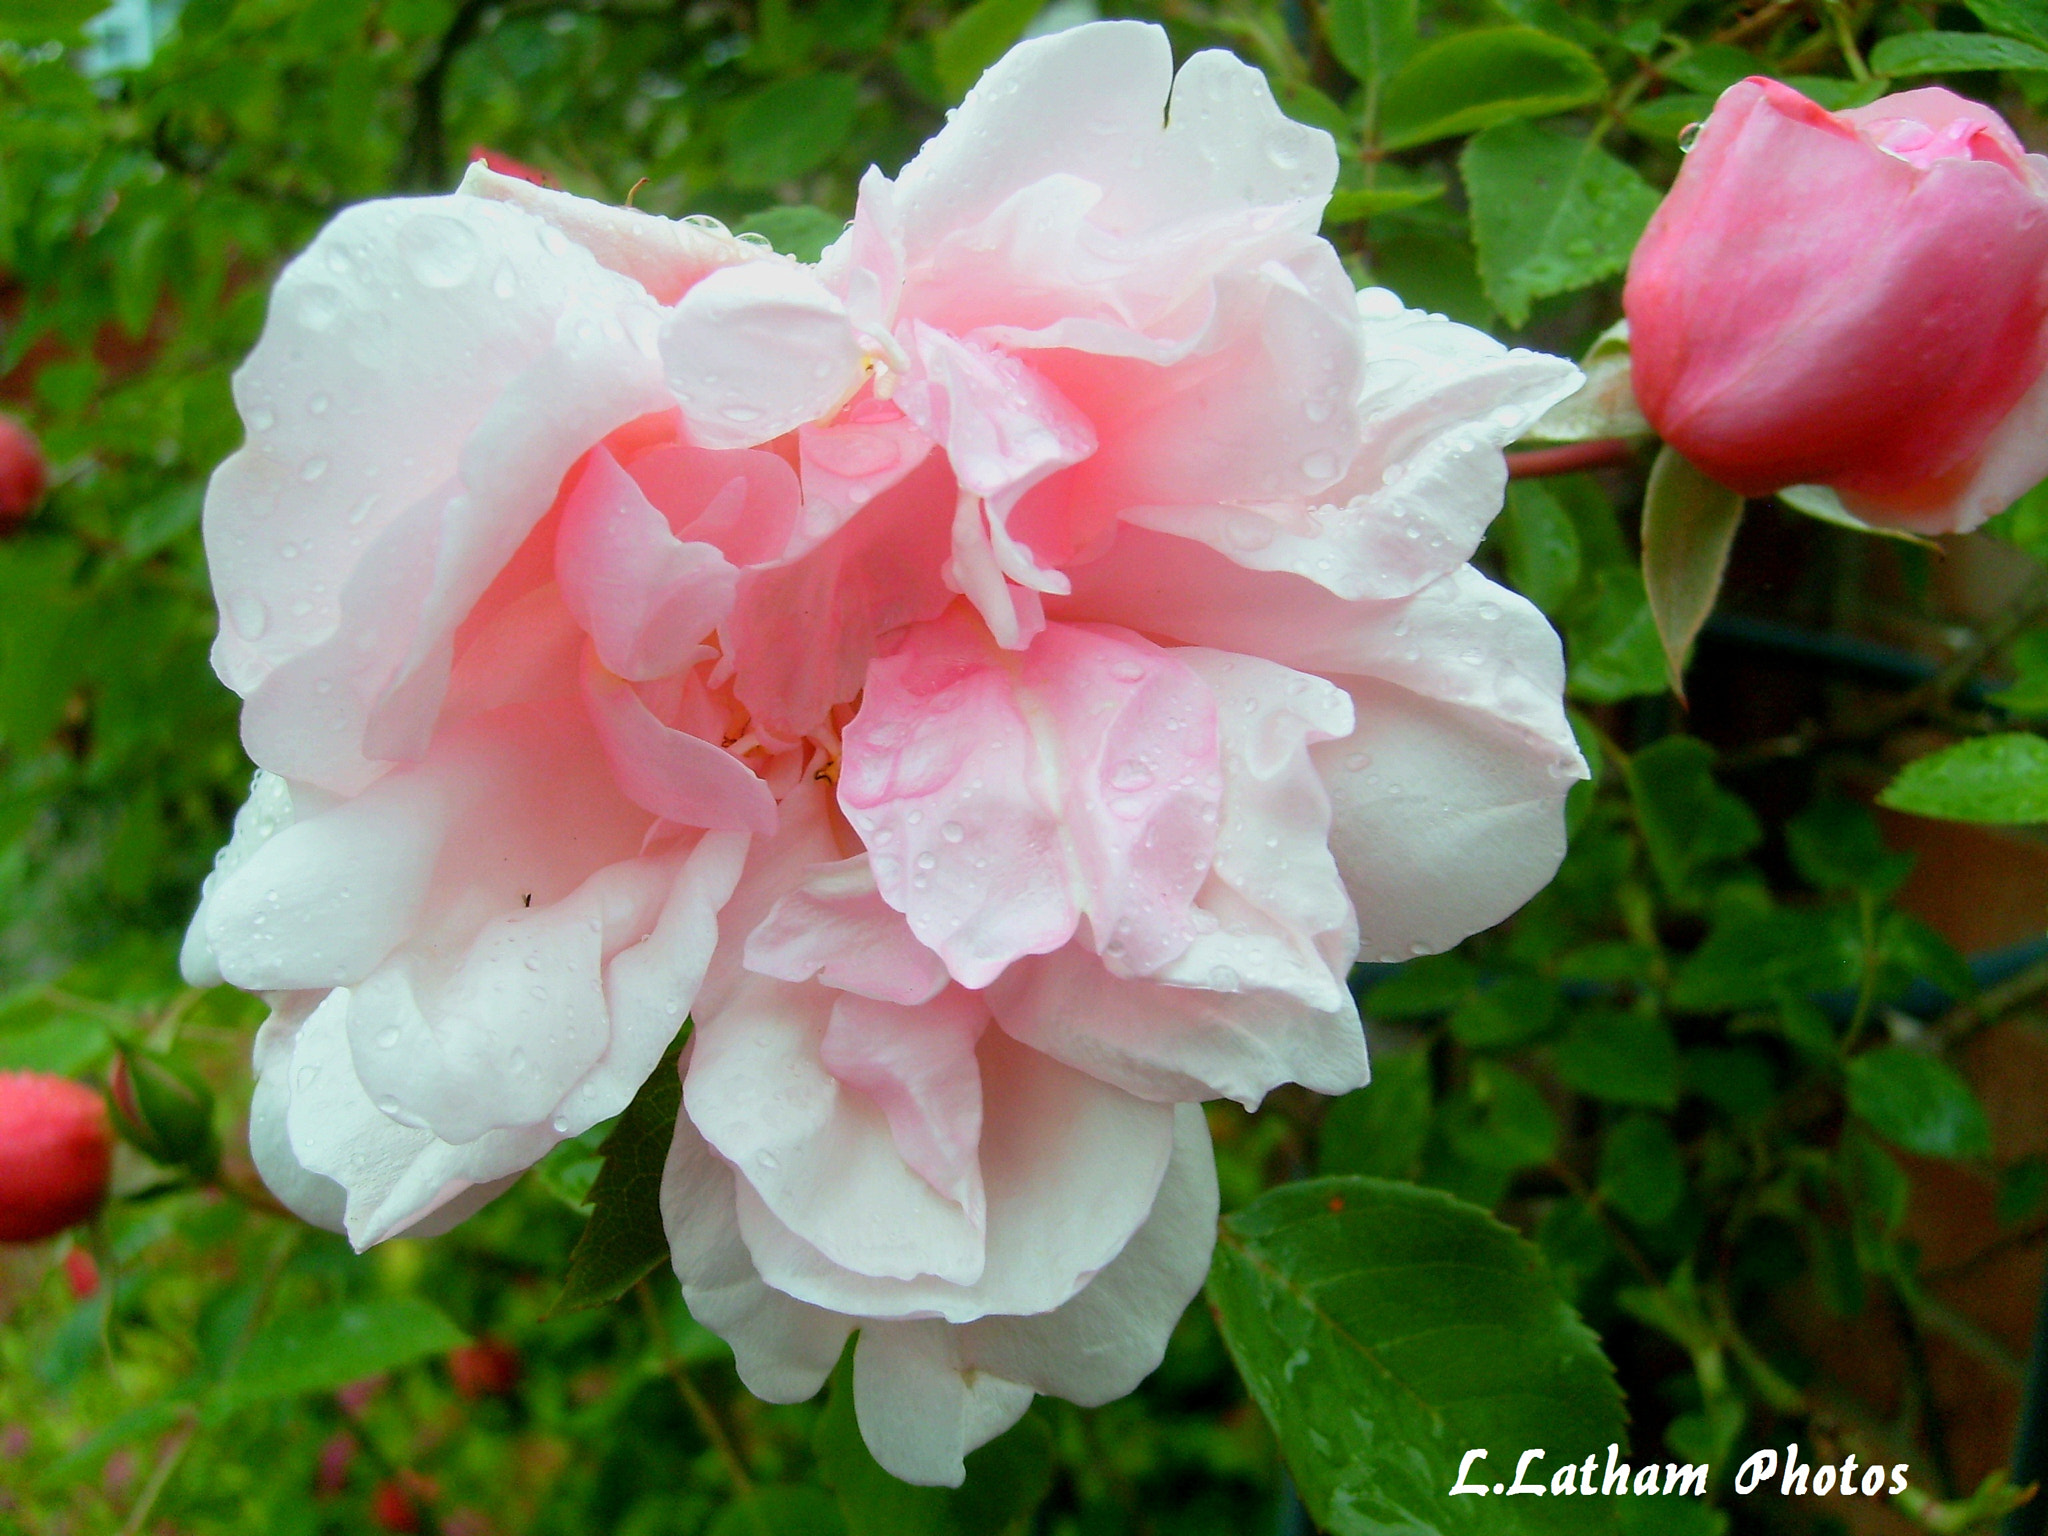 Photograph Albertine roses by lewis latham-cooper on 500px